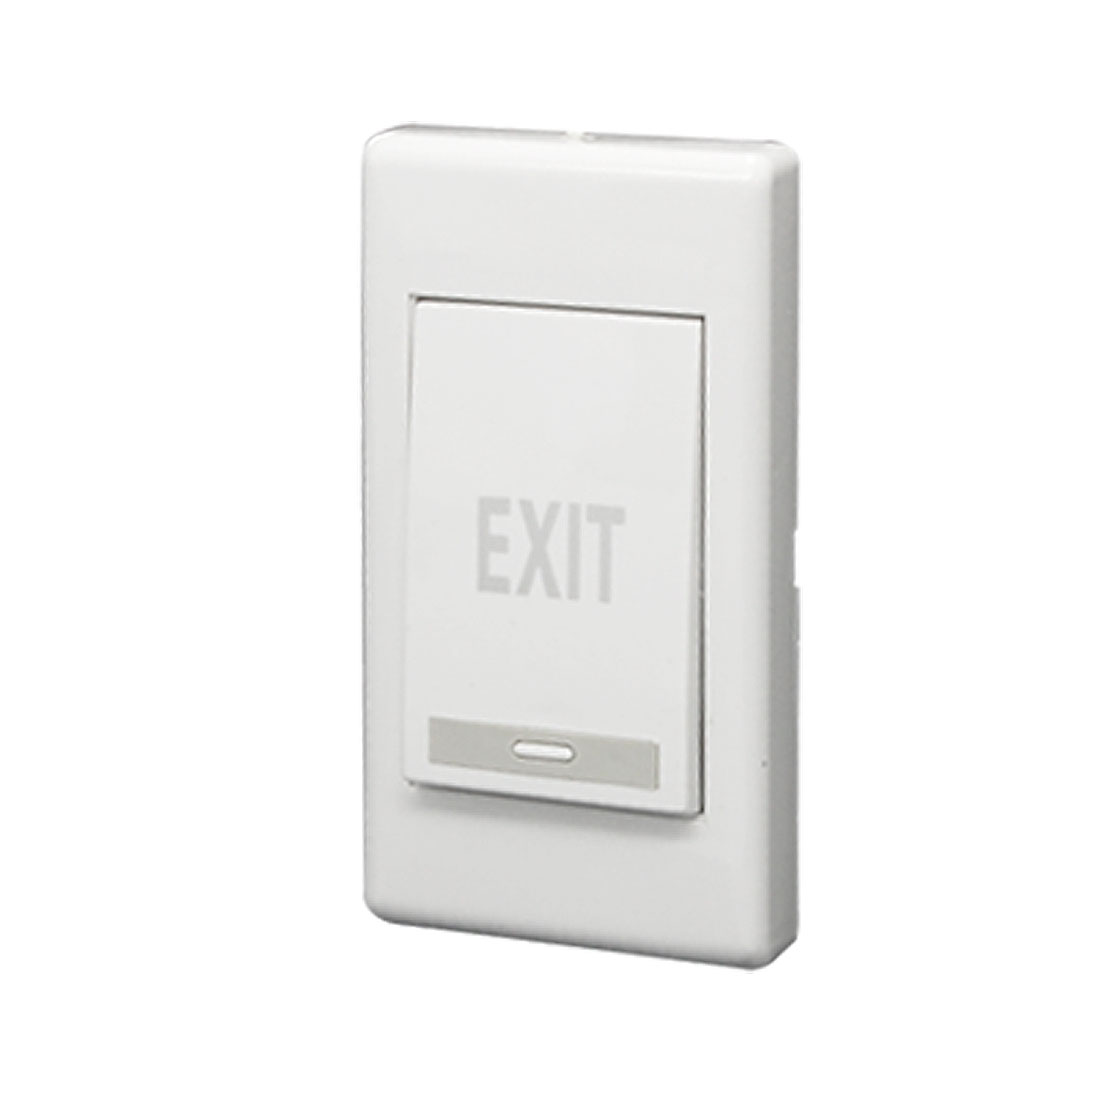 Exit Push Release Button Panel Momentary NO Switch for Electric Door Strike